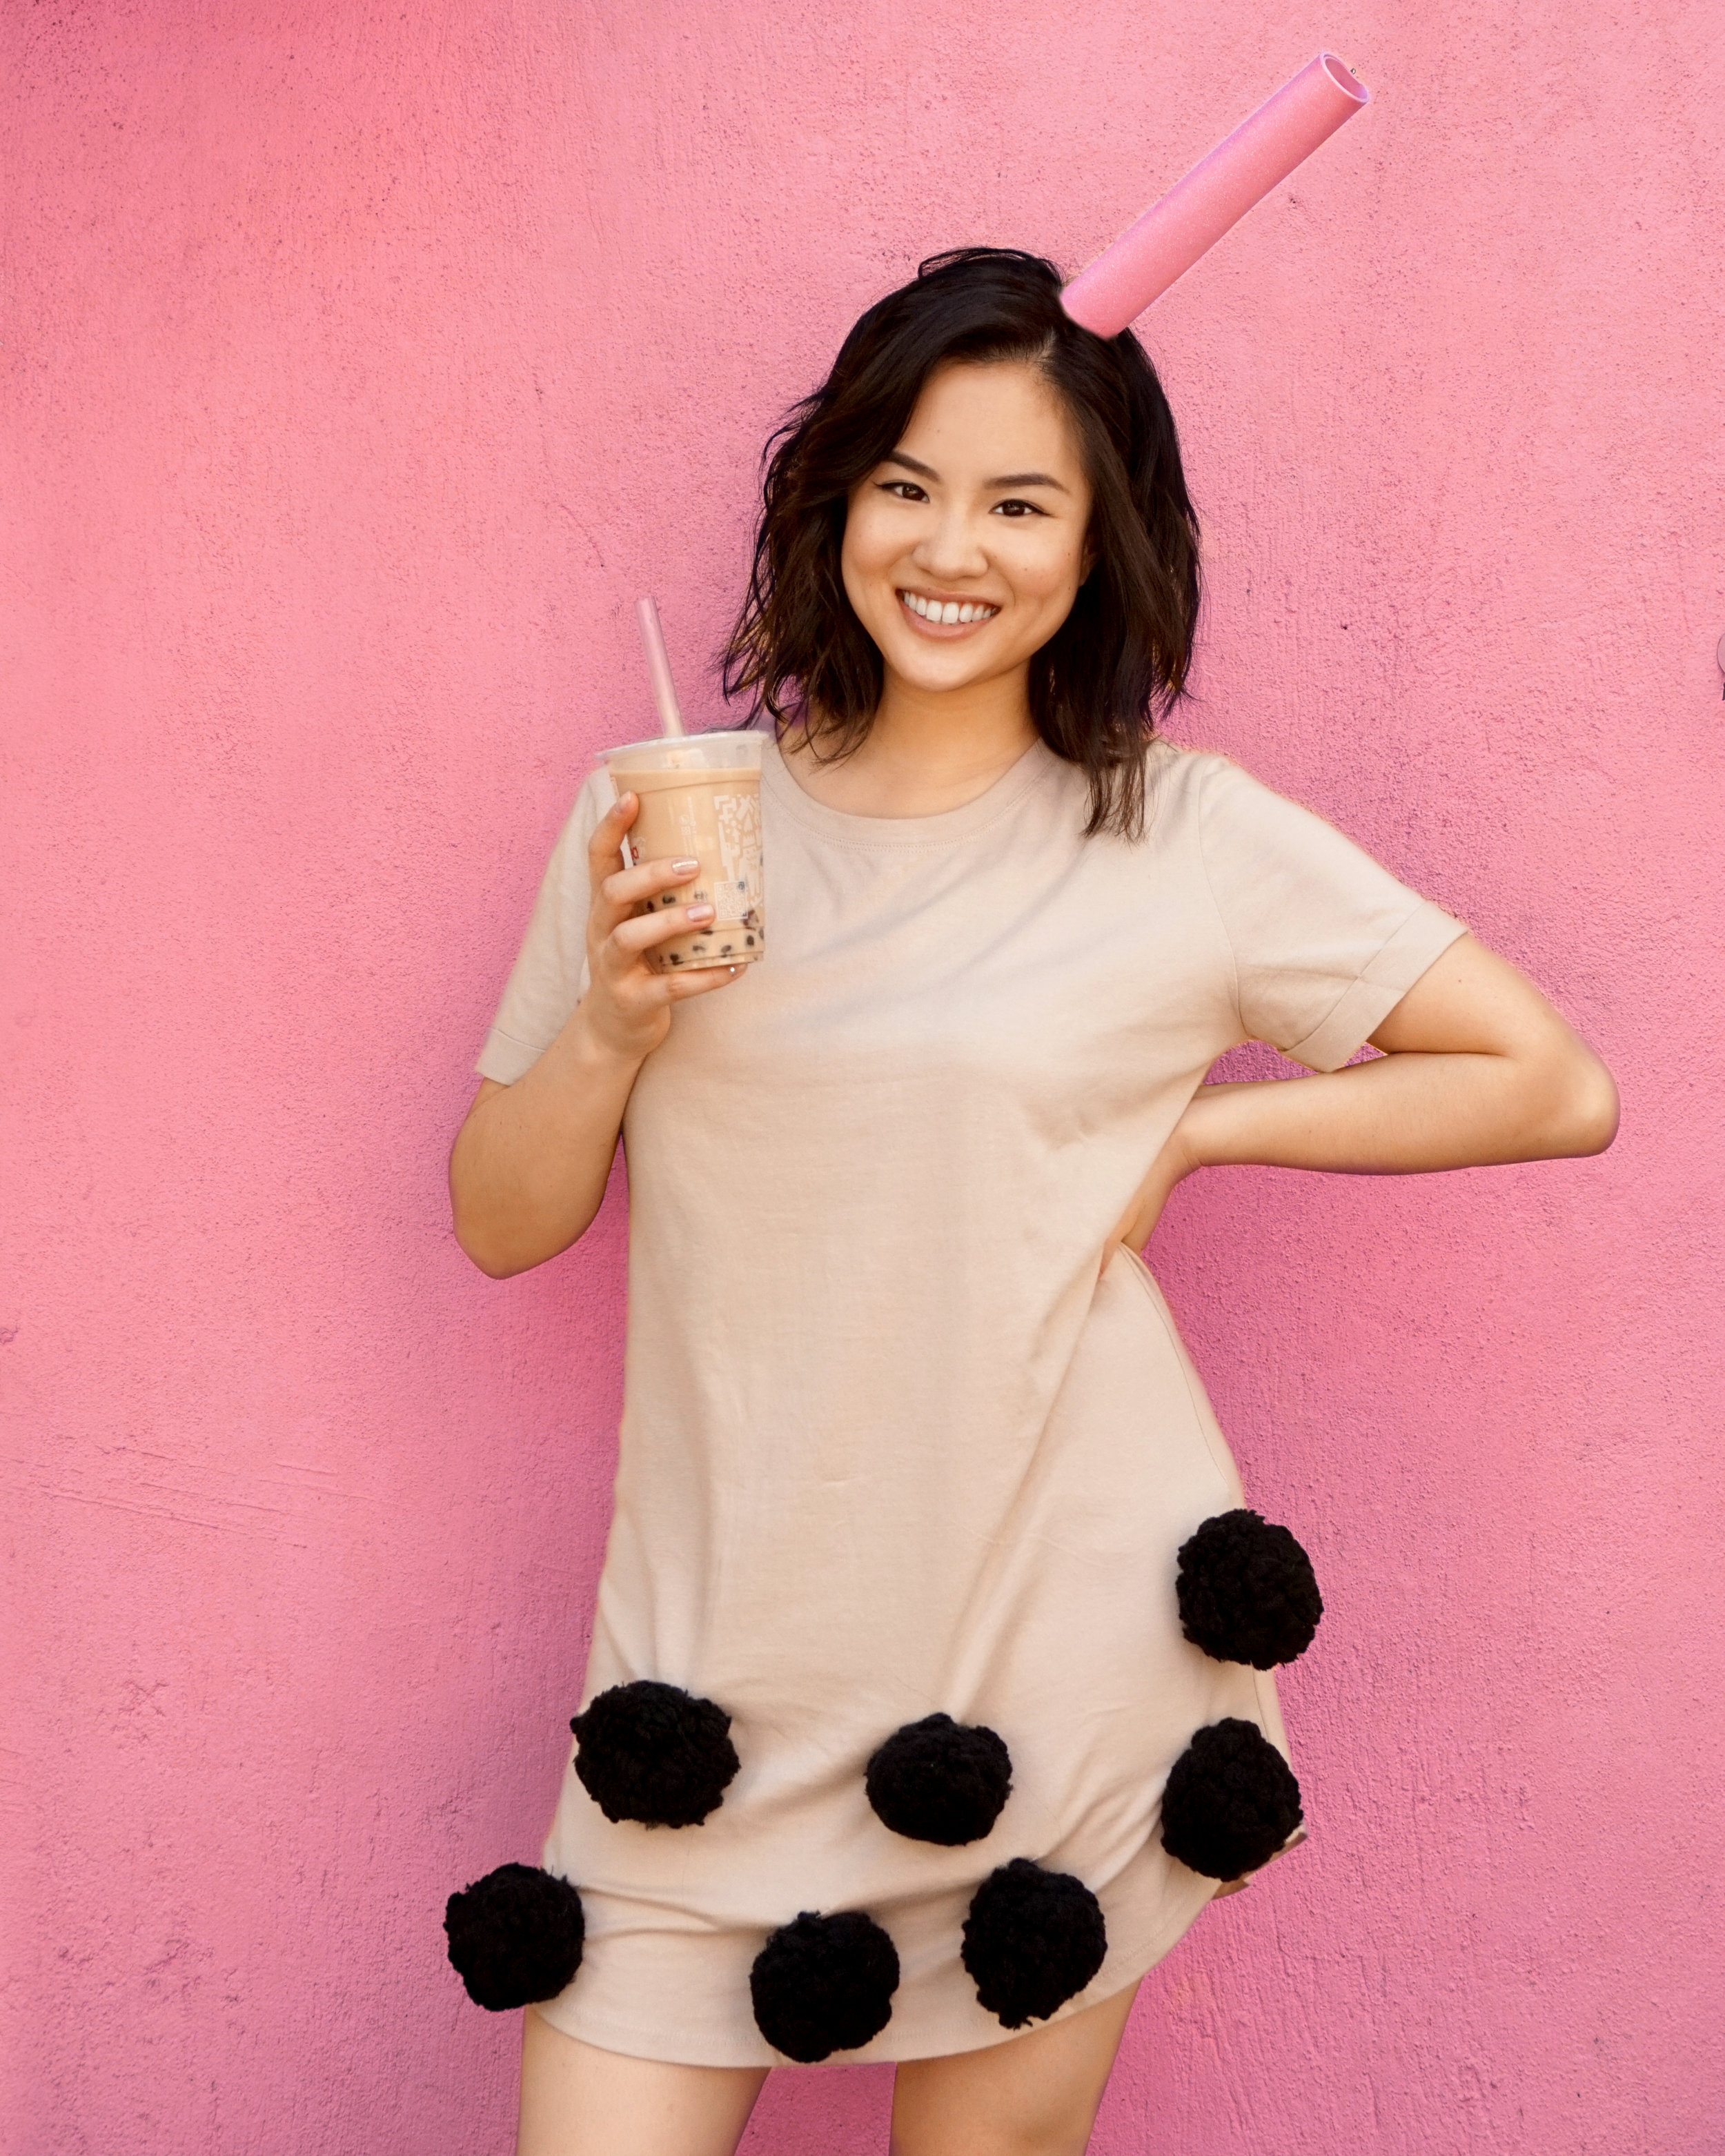 Boba Milk Tea Halloween DIY Costume Tutorial by Broke and Cooking - www.brokeandcooking.com